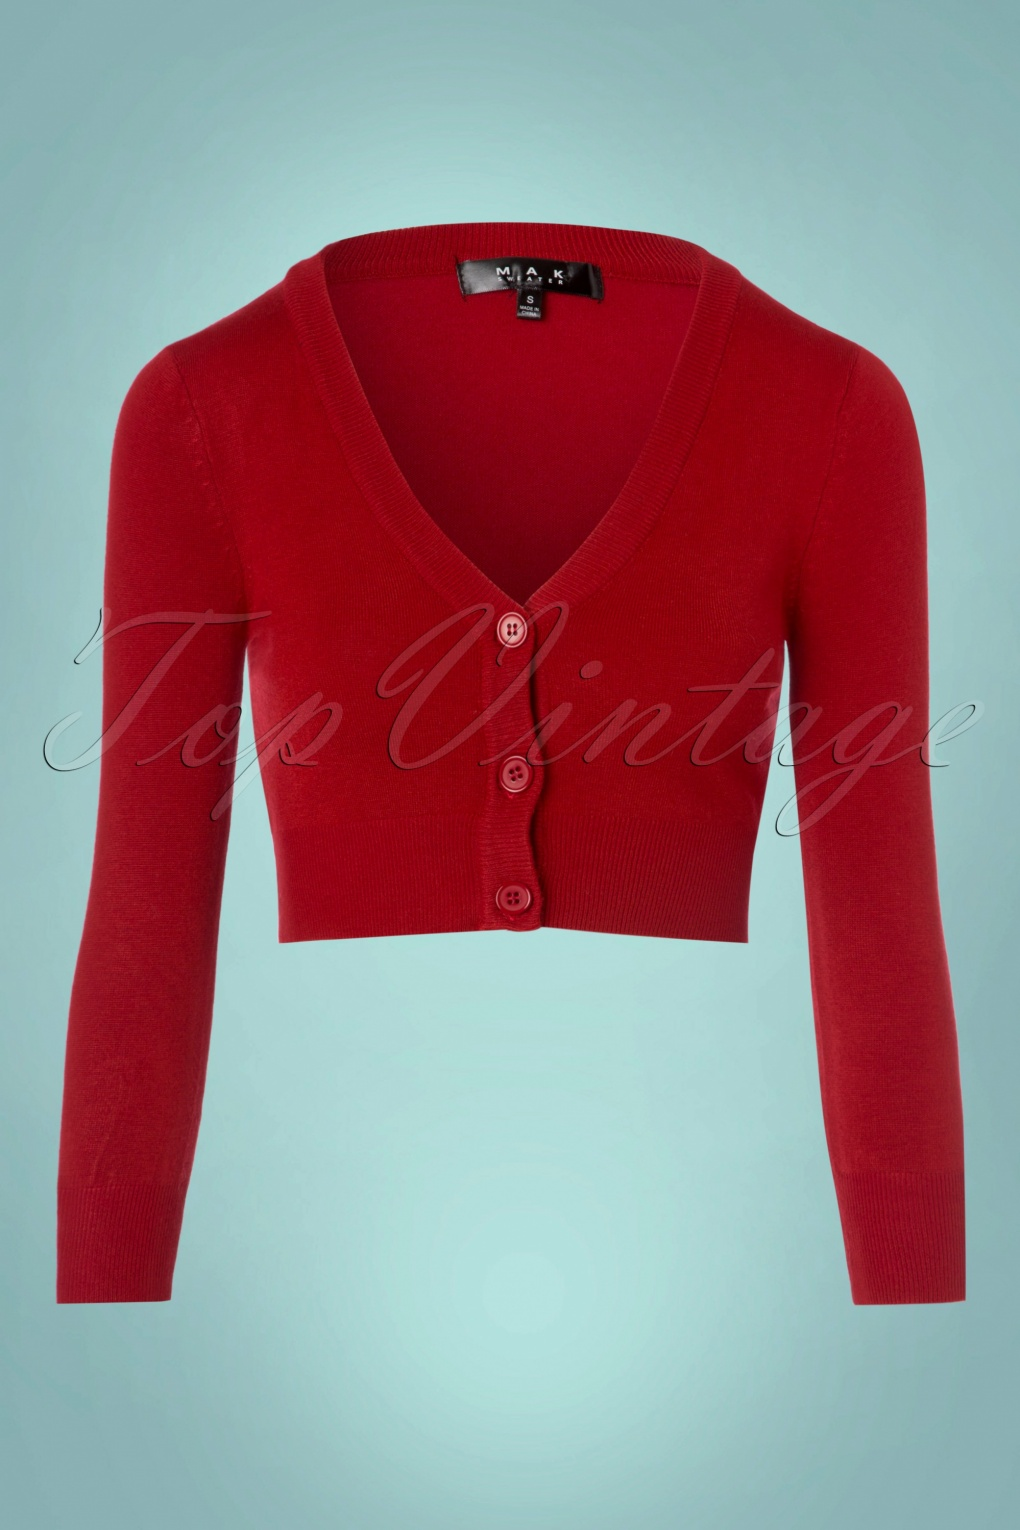 Vintage Sweaters: Cable Knit, Fair Isle Cardigans & Sweaters 50s Shela Cropped Cardigan in Lipstick Red £21.83 AT vintagedancer.com